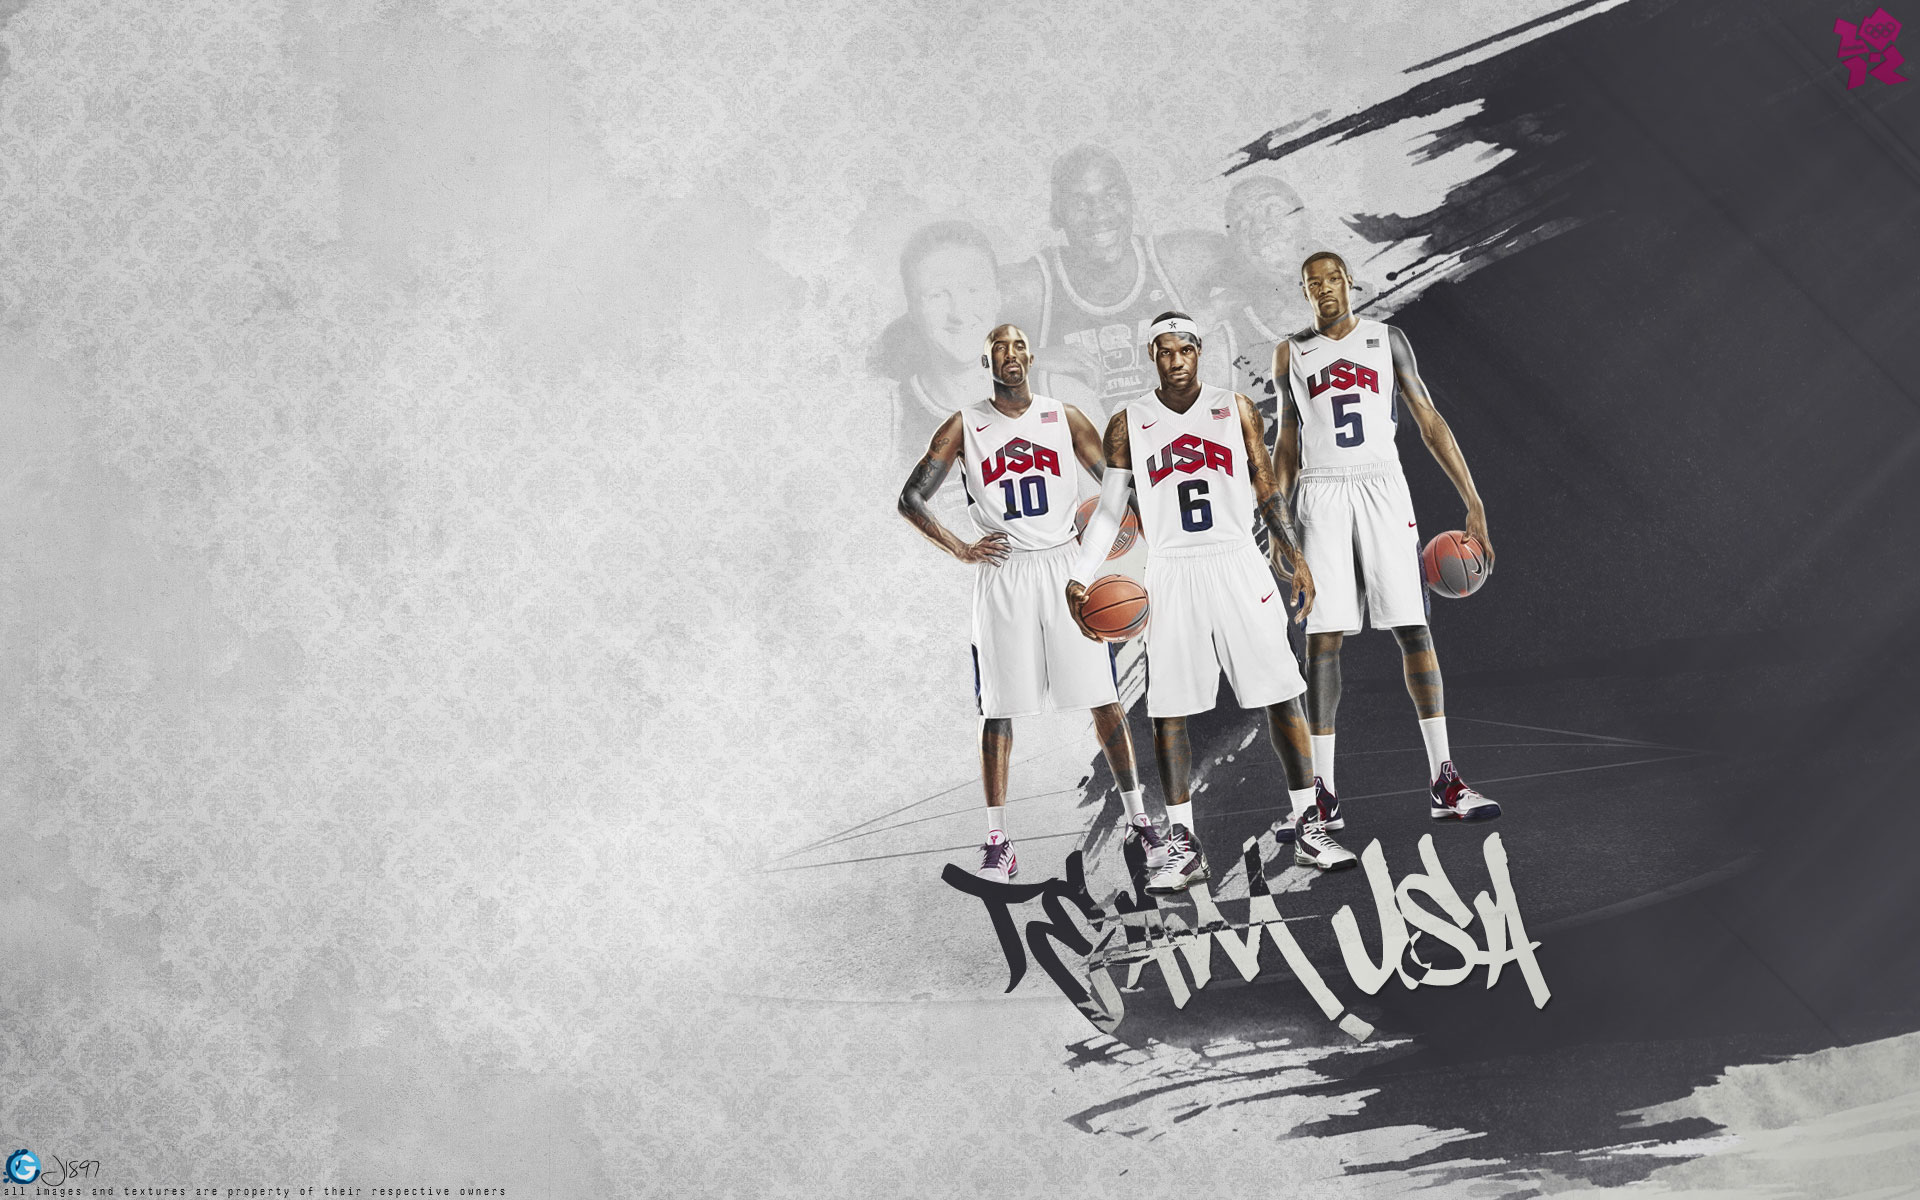 Kobe lebron durant2 usa dream team wallpaper basketwallpapers kobe lebron durant2 usa dream team wallpaper basketwallpapers free desktop wallpapers for widescreen hd and mobile voltagebd Images